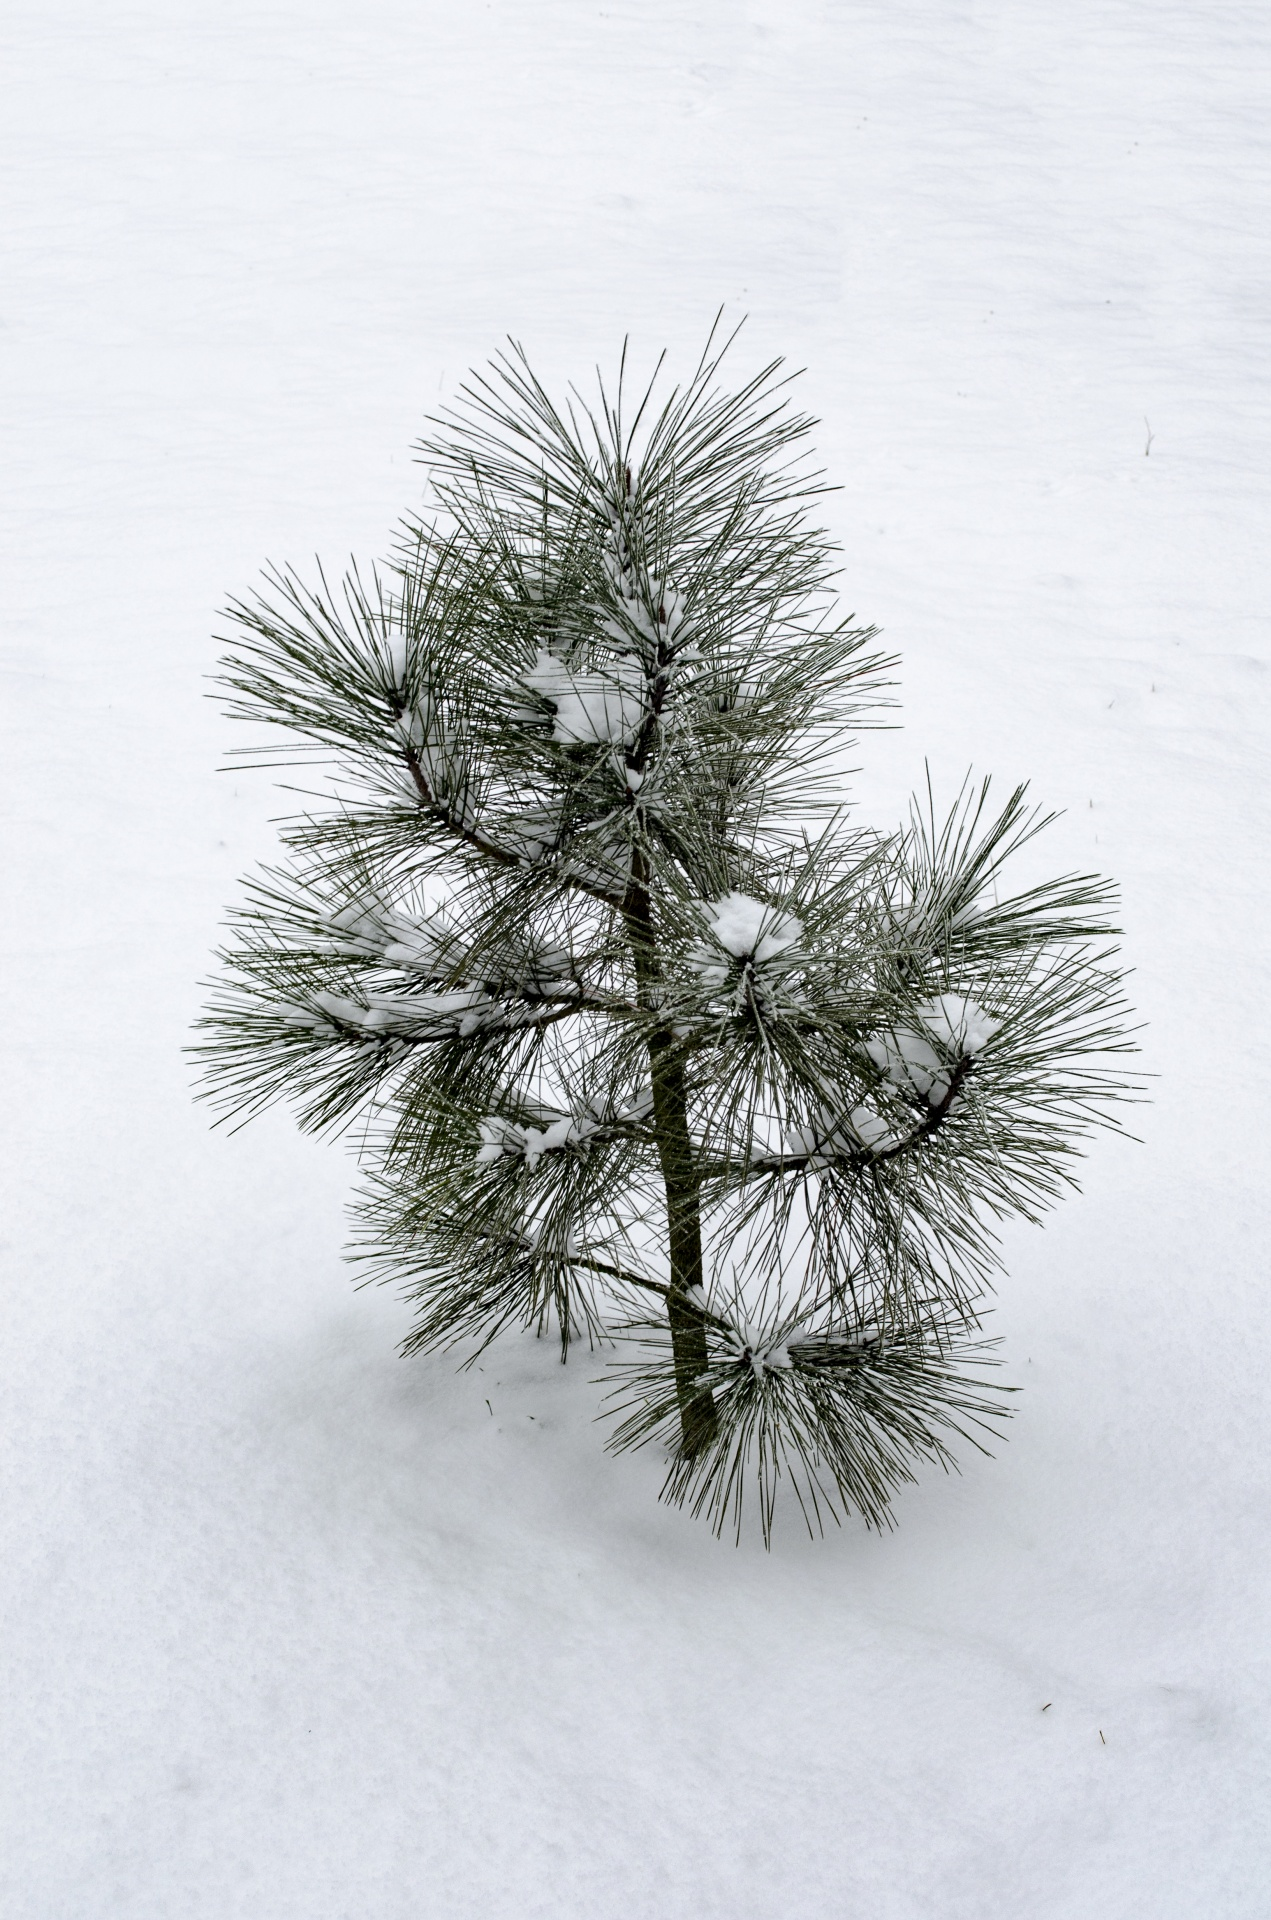 Small Pine Tree Free Stock Photo - Public Domain Pictures